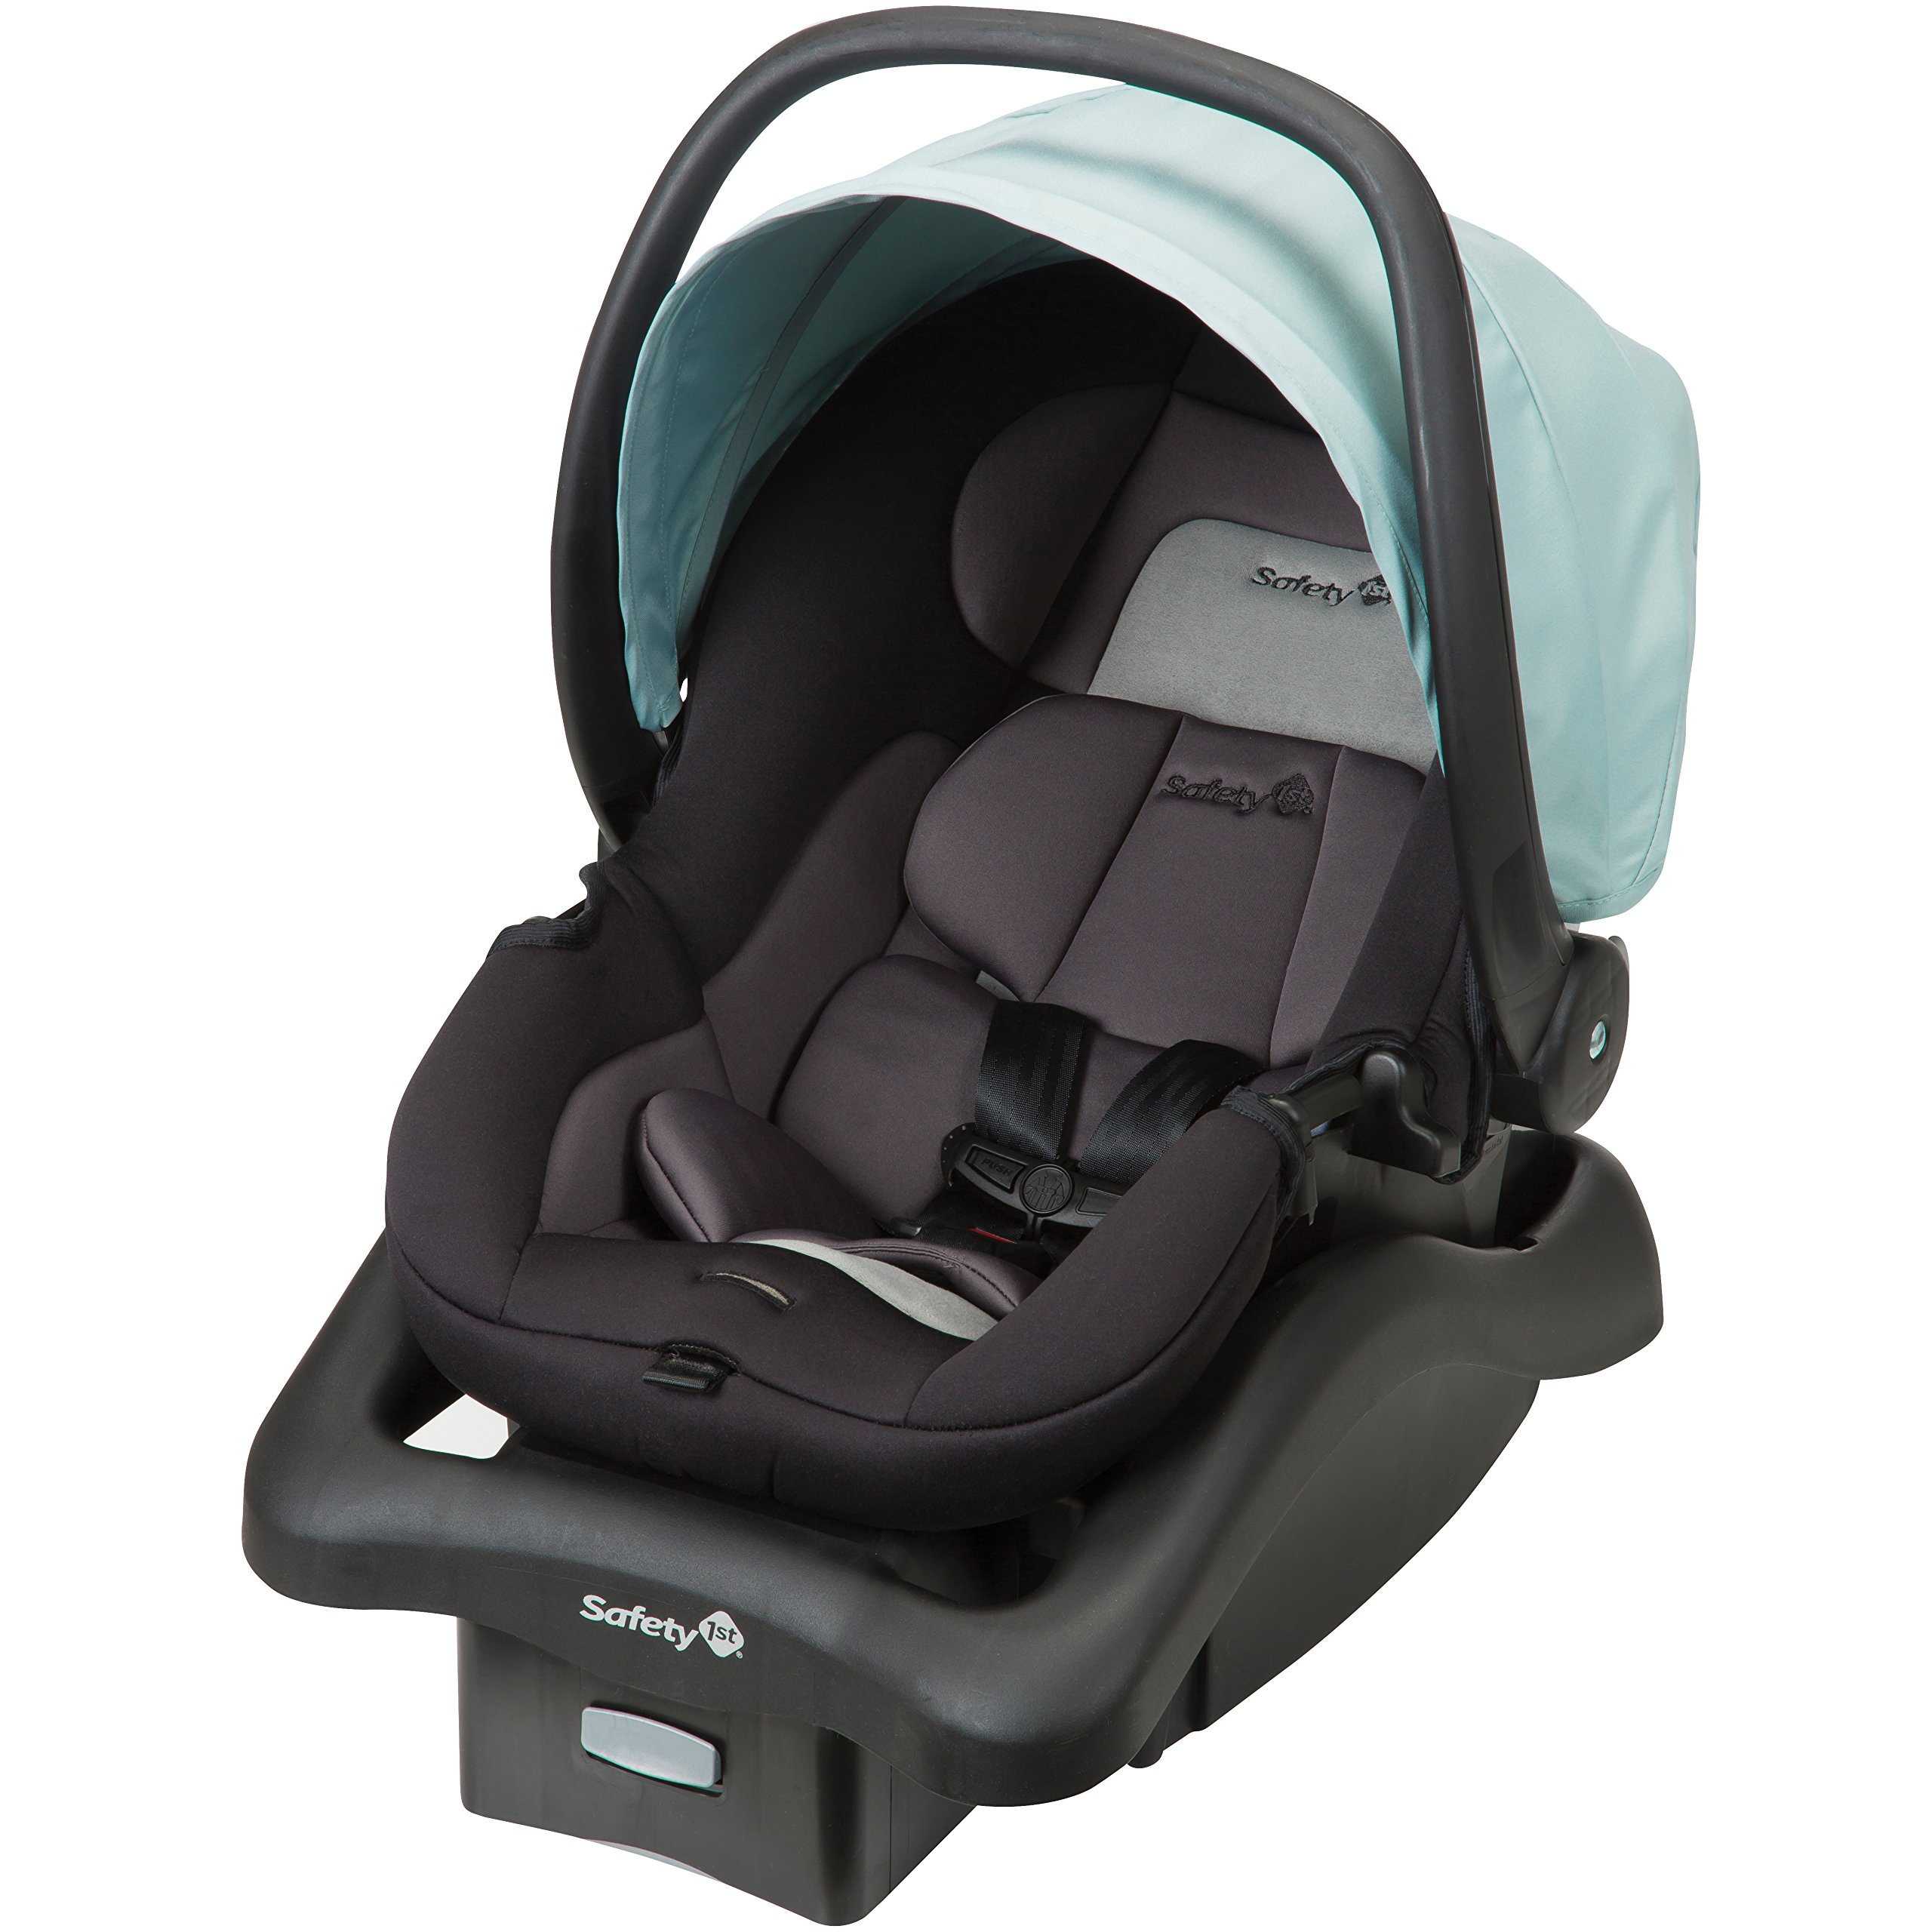 Safety 1st onBoard 35 LT Infant Car Seat, Juniper Pop by Safety 1st (Image #1)